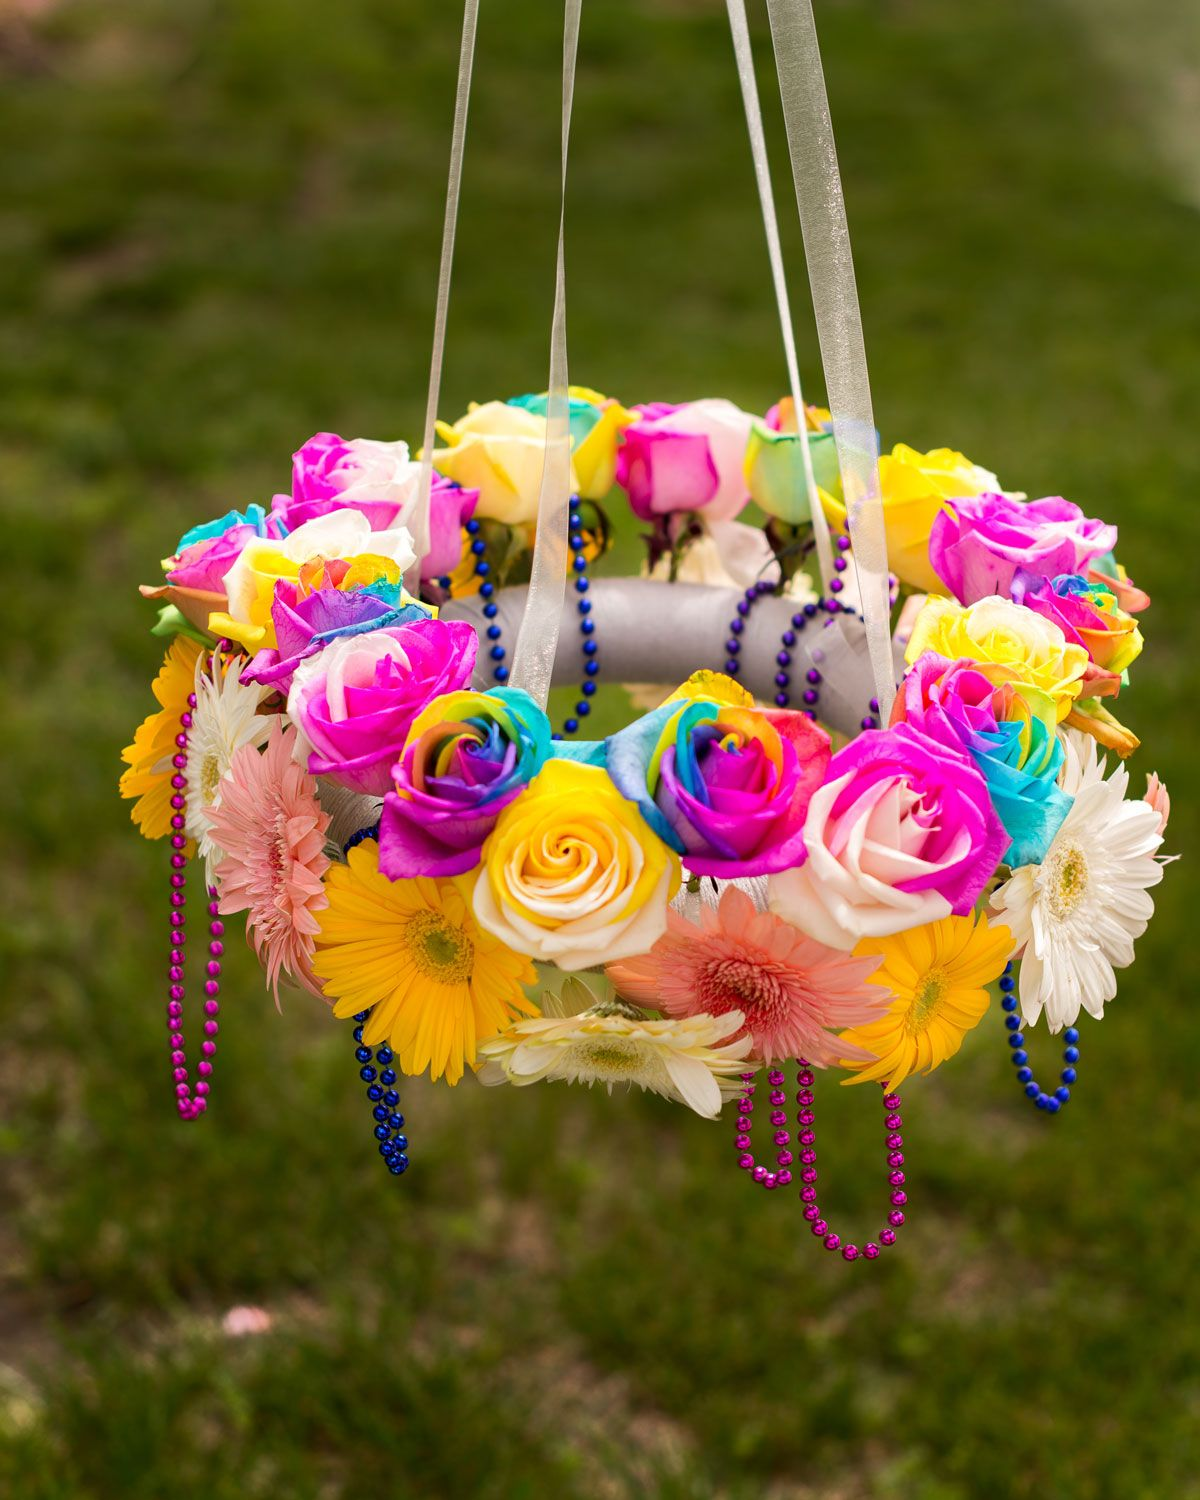 Diy flower chandelier outdoors partayyyyy pinterest flower diy flower chandelier outdoors arubaitofo Image collections